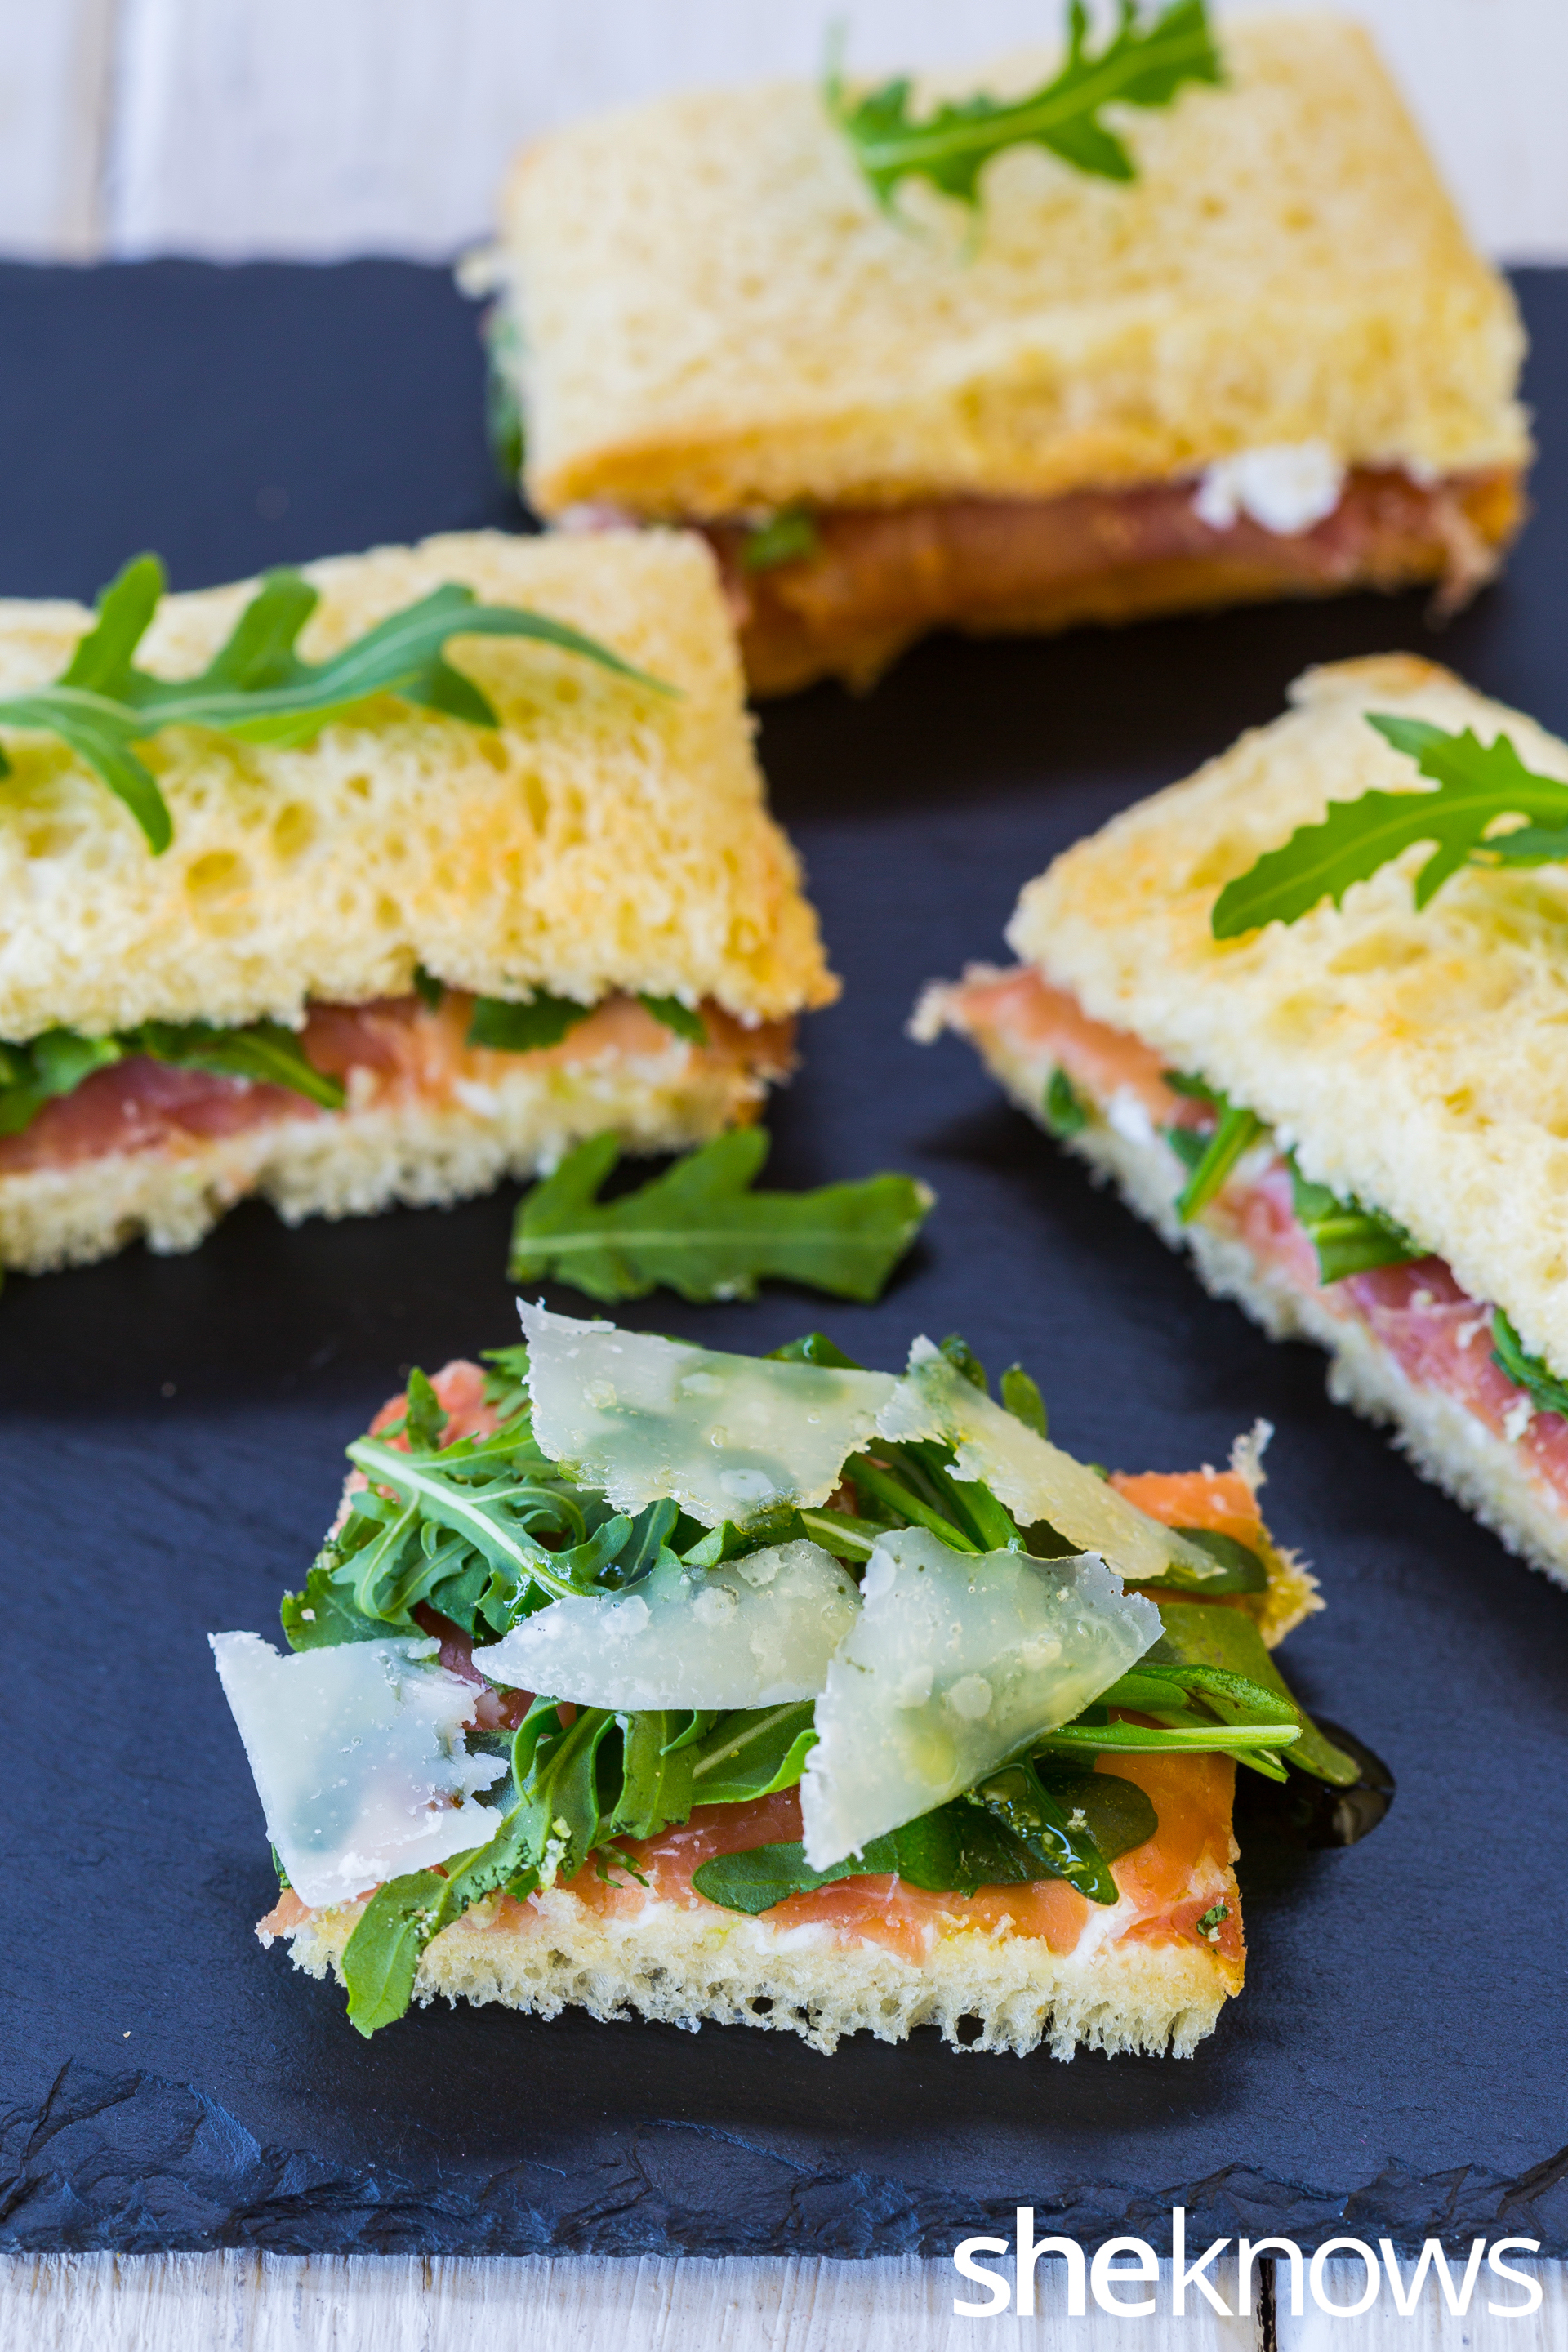 Parmesan cream cheese, prosciutto & arugula tea sandwich